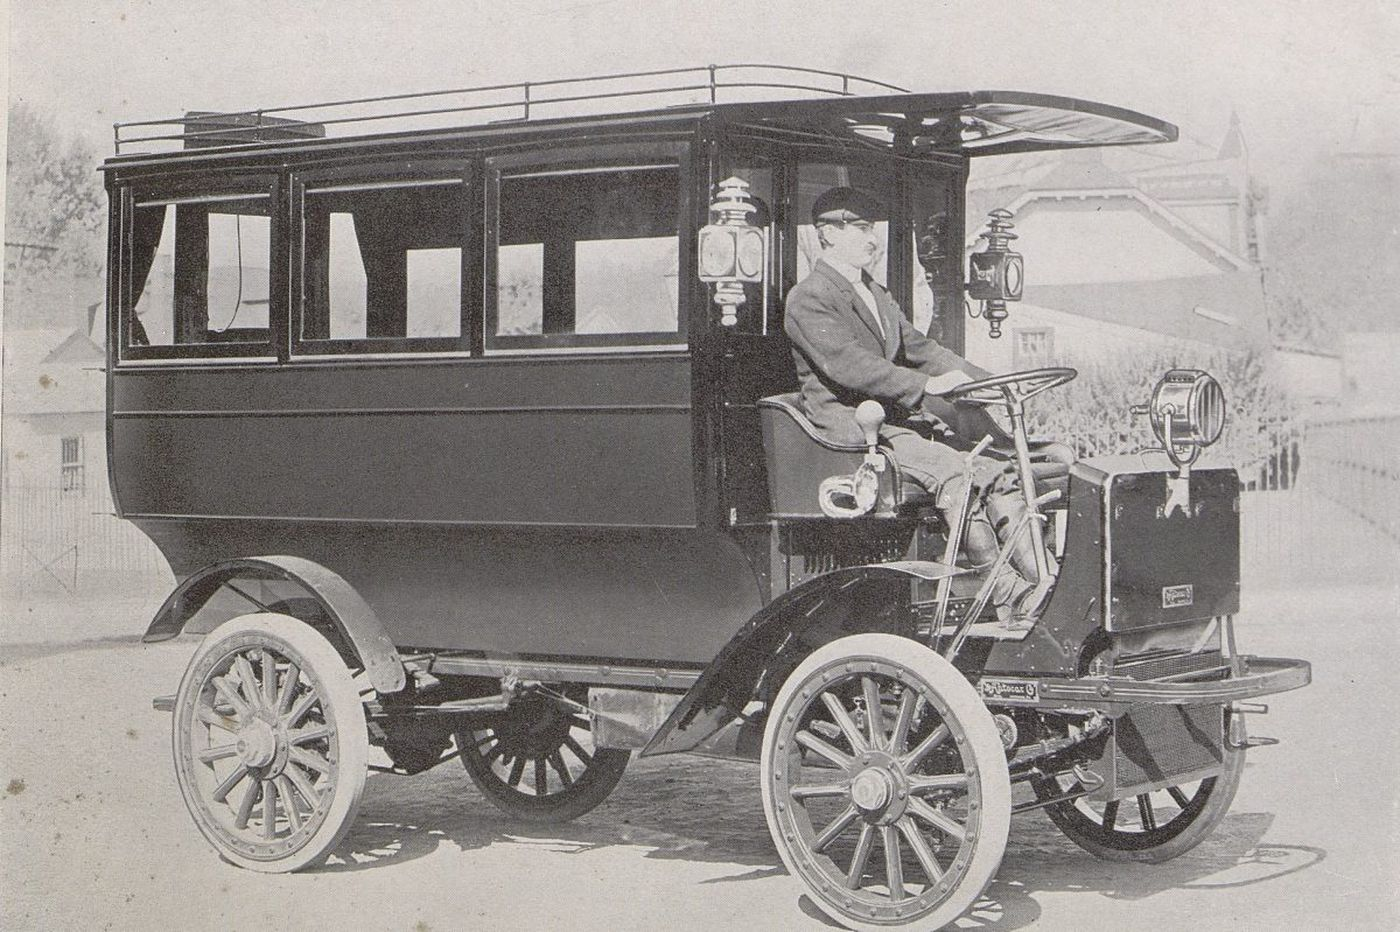 Ardmore's history of automobile innovation| Philly History